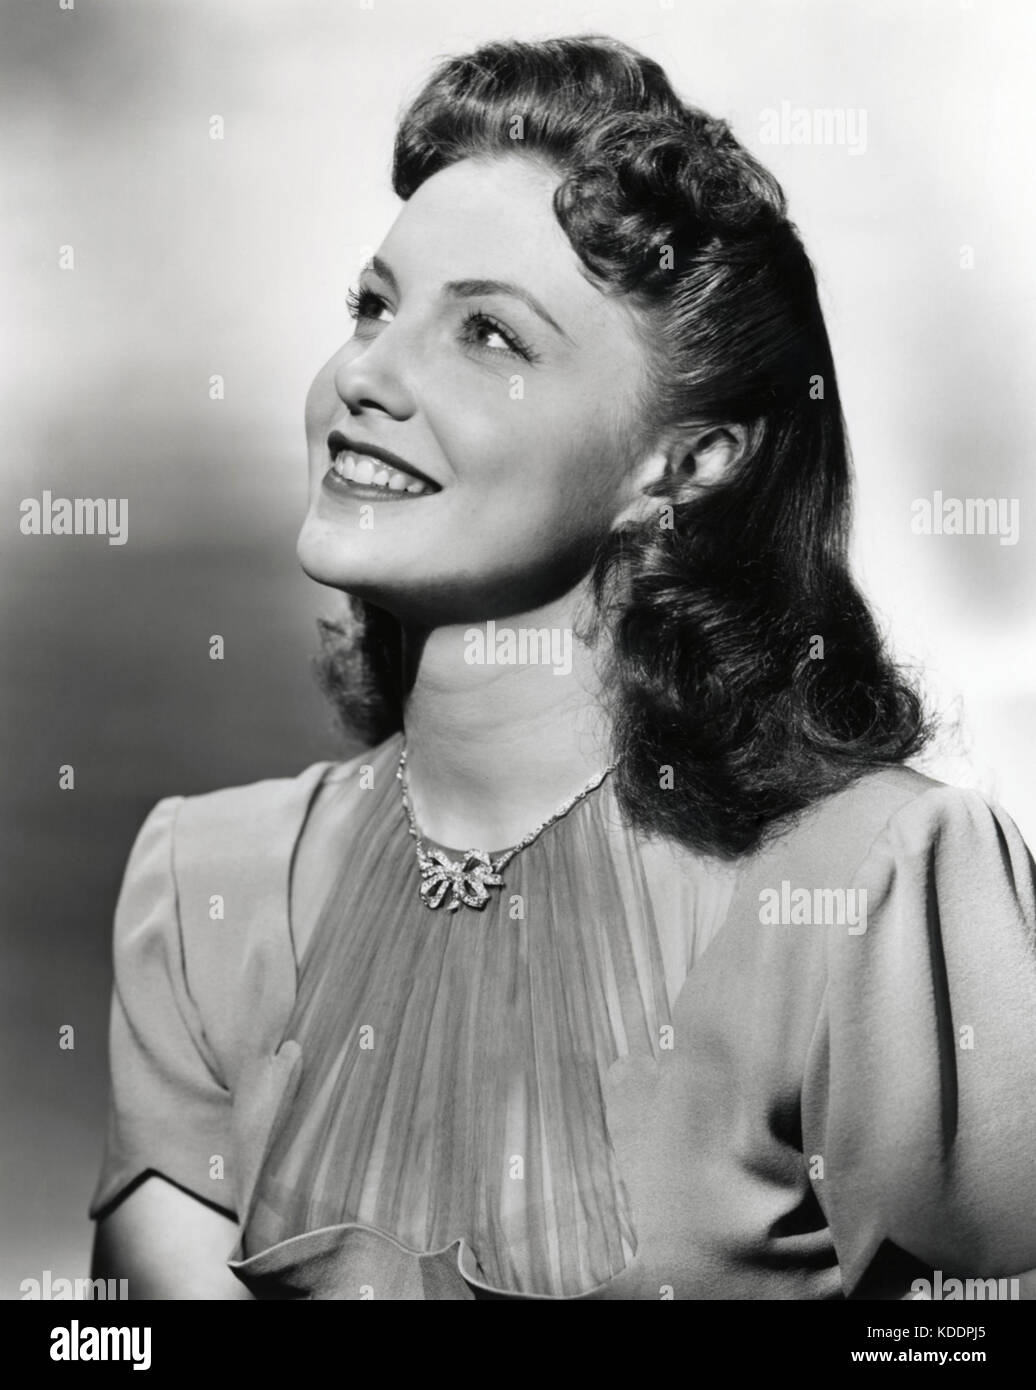 JOAN LESLIE (1925-2015) American film actress and dancer about 1937 - Stock Image